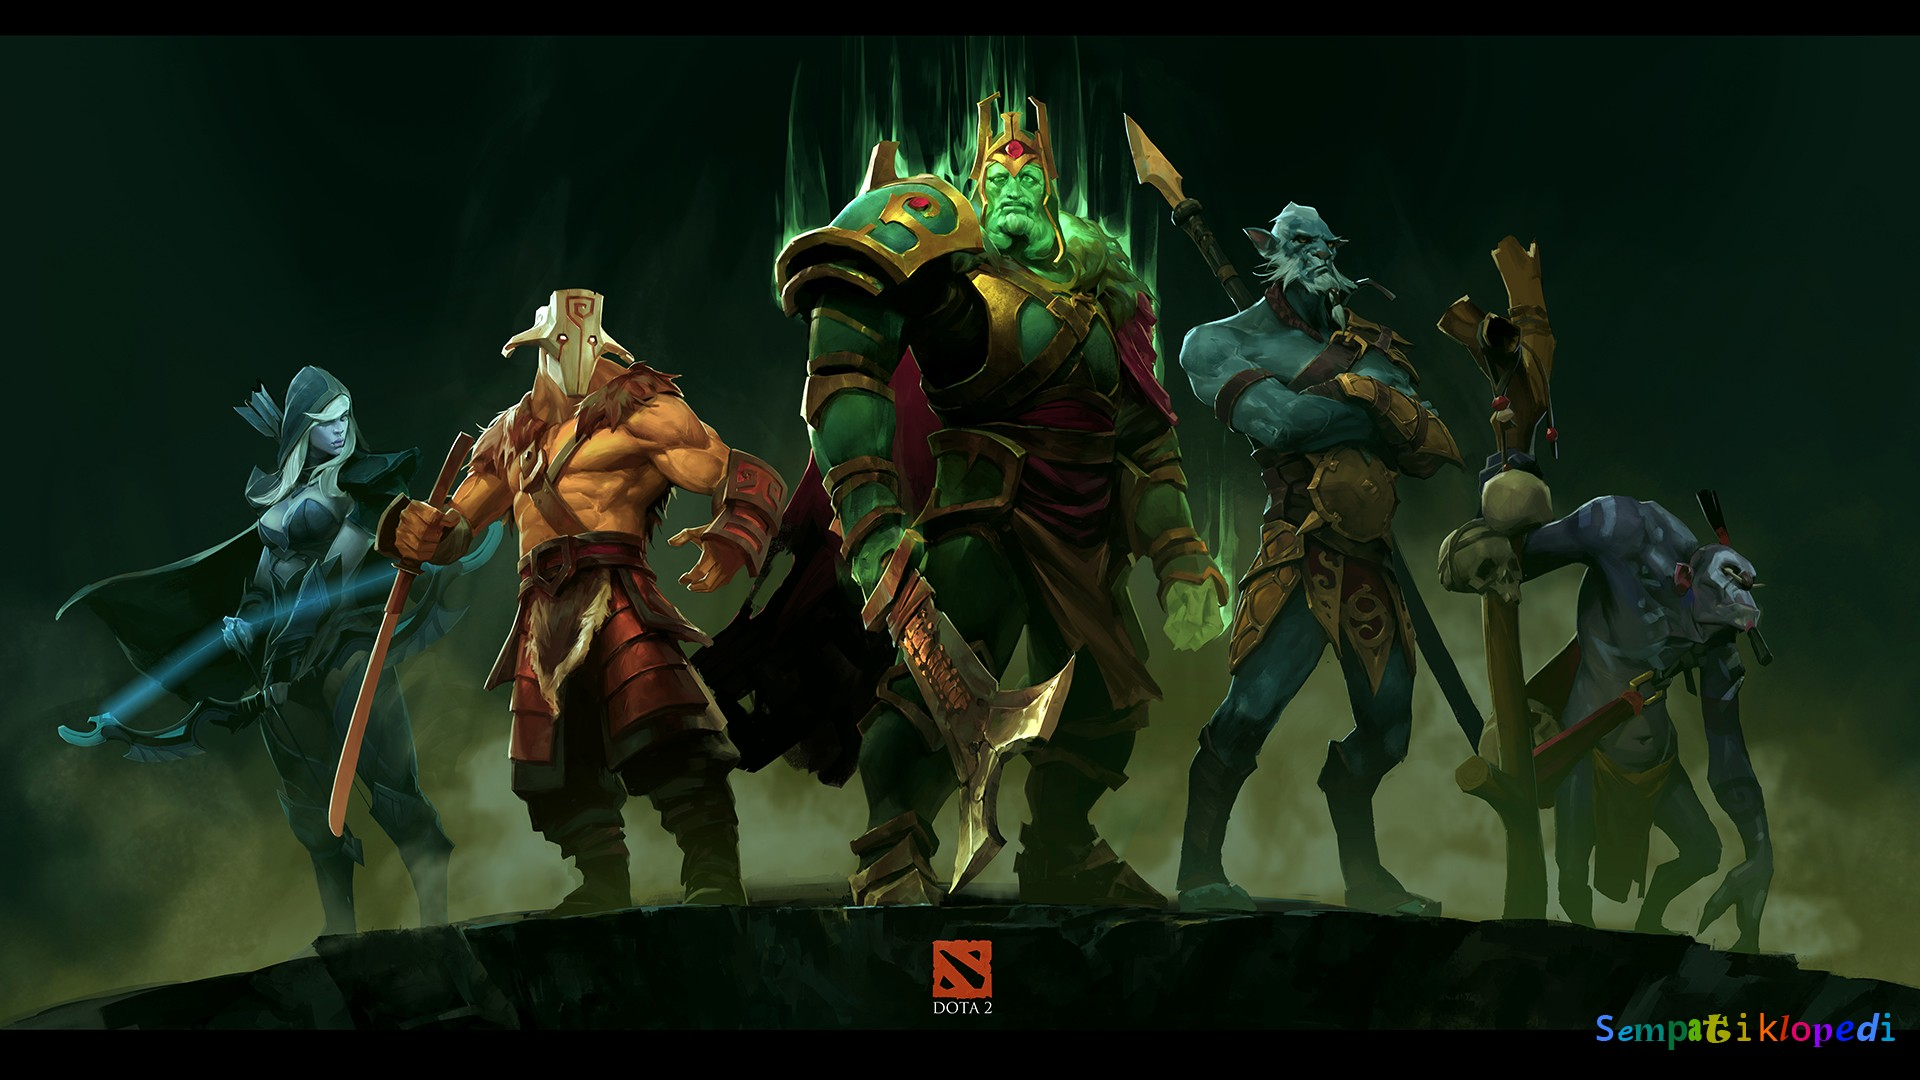 Defense of the Ancients 2 (Dota 2)